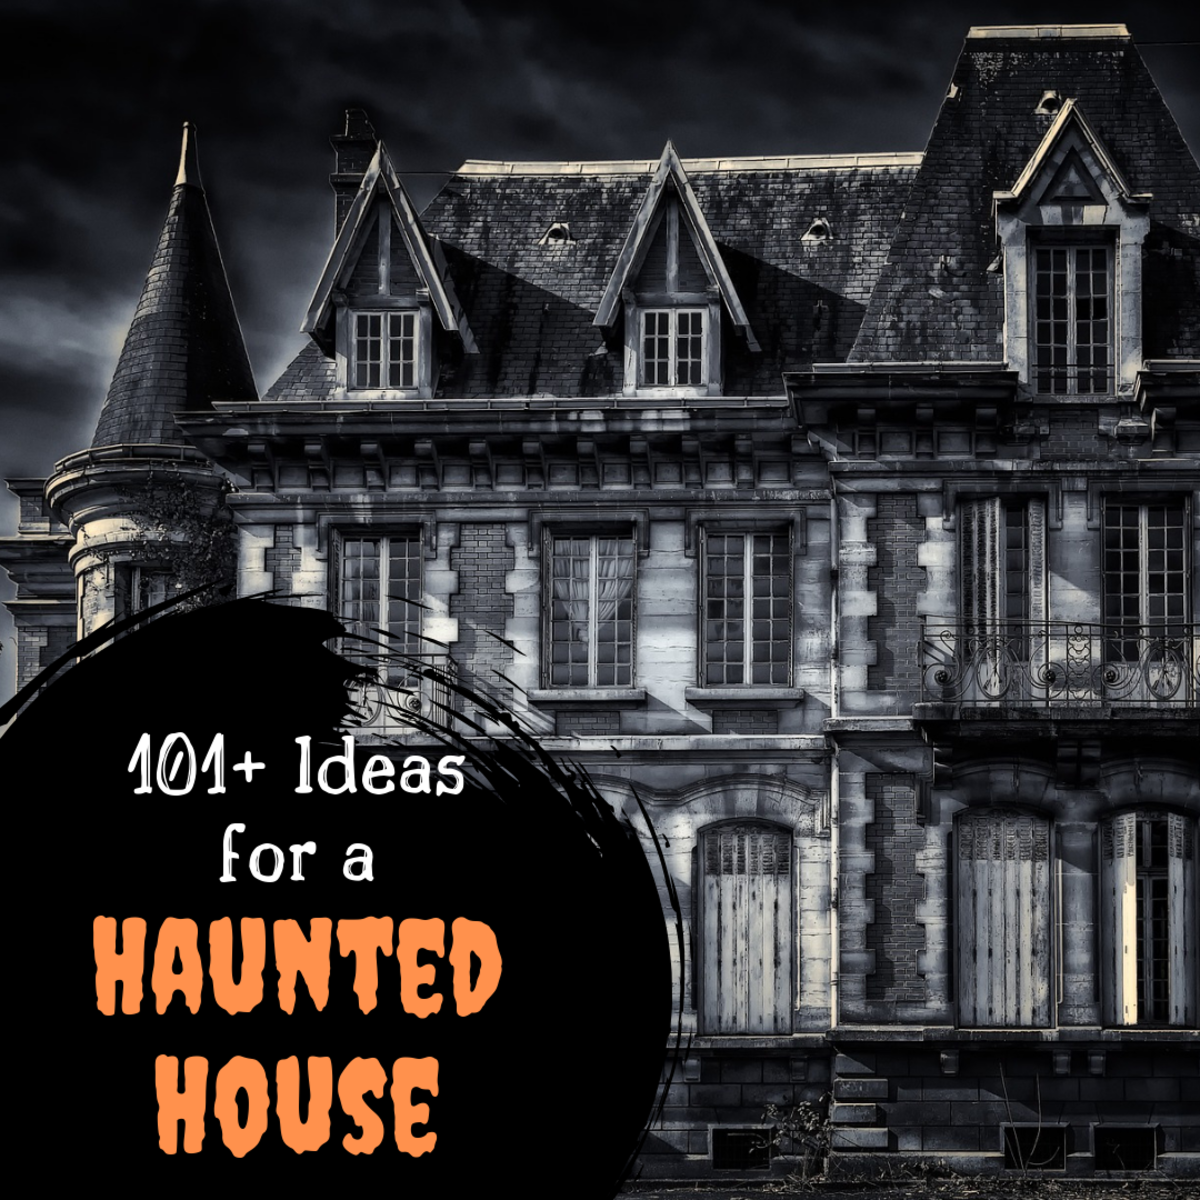 Get ideas on themes, props, sound effects, spooky characters, and more to make your haunted house the scariest of all!